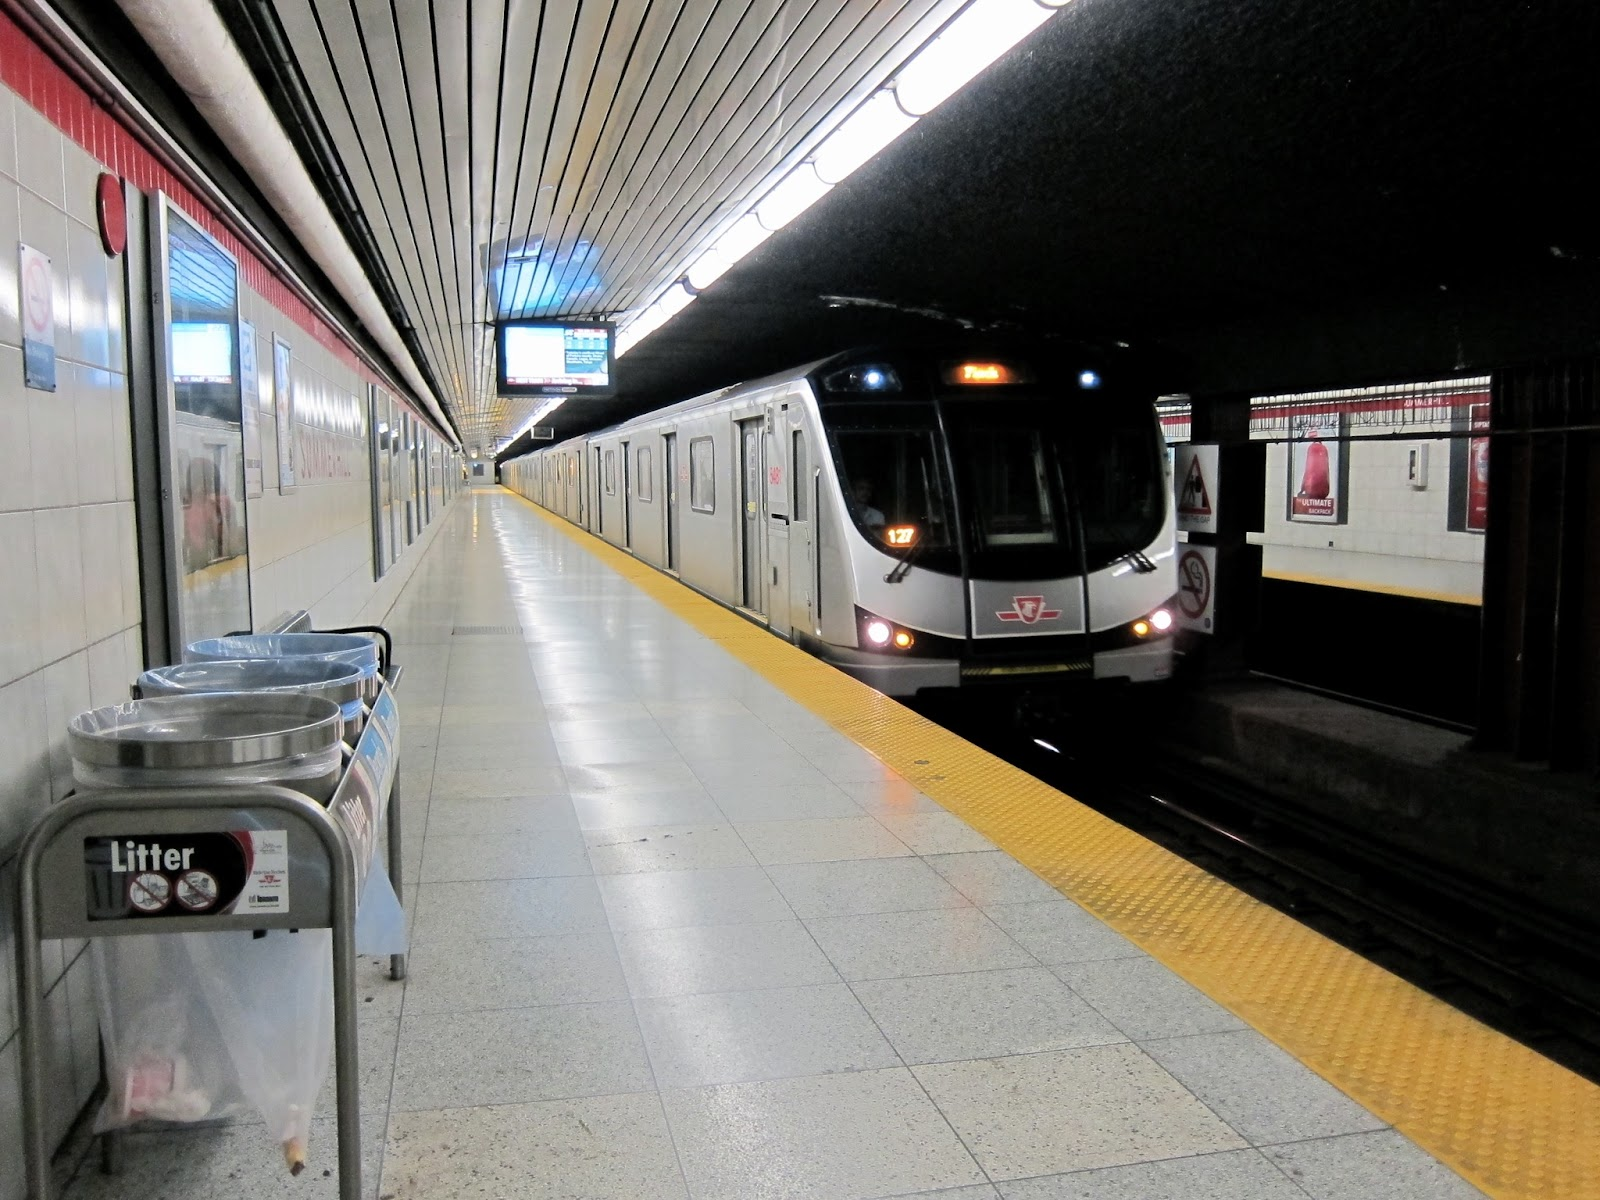 Train at Summerhill subway station